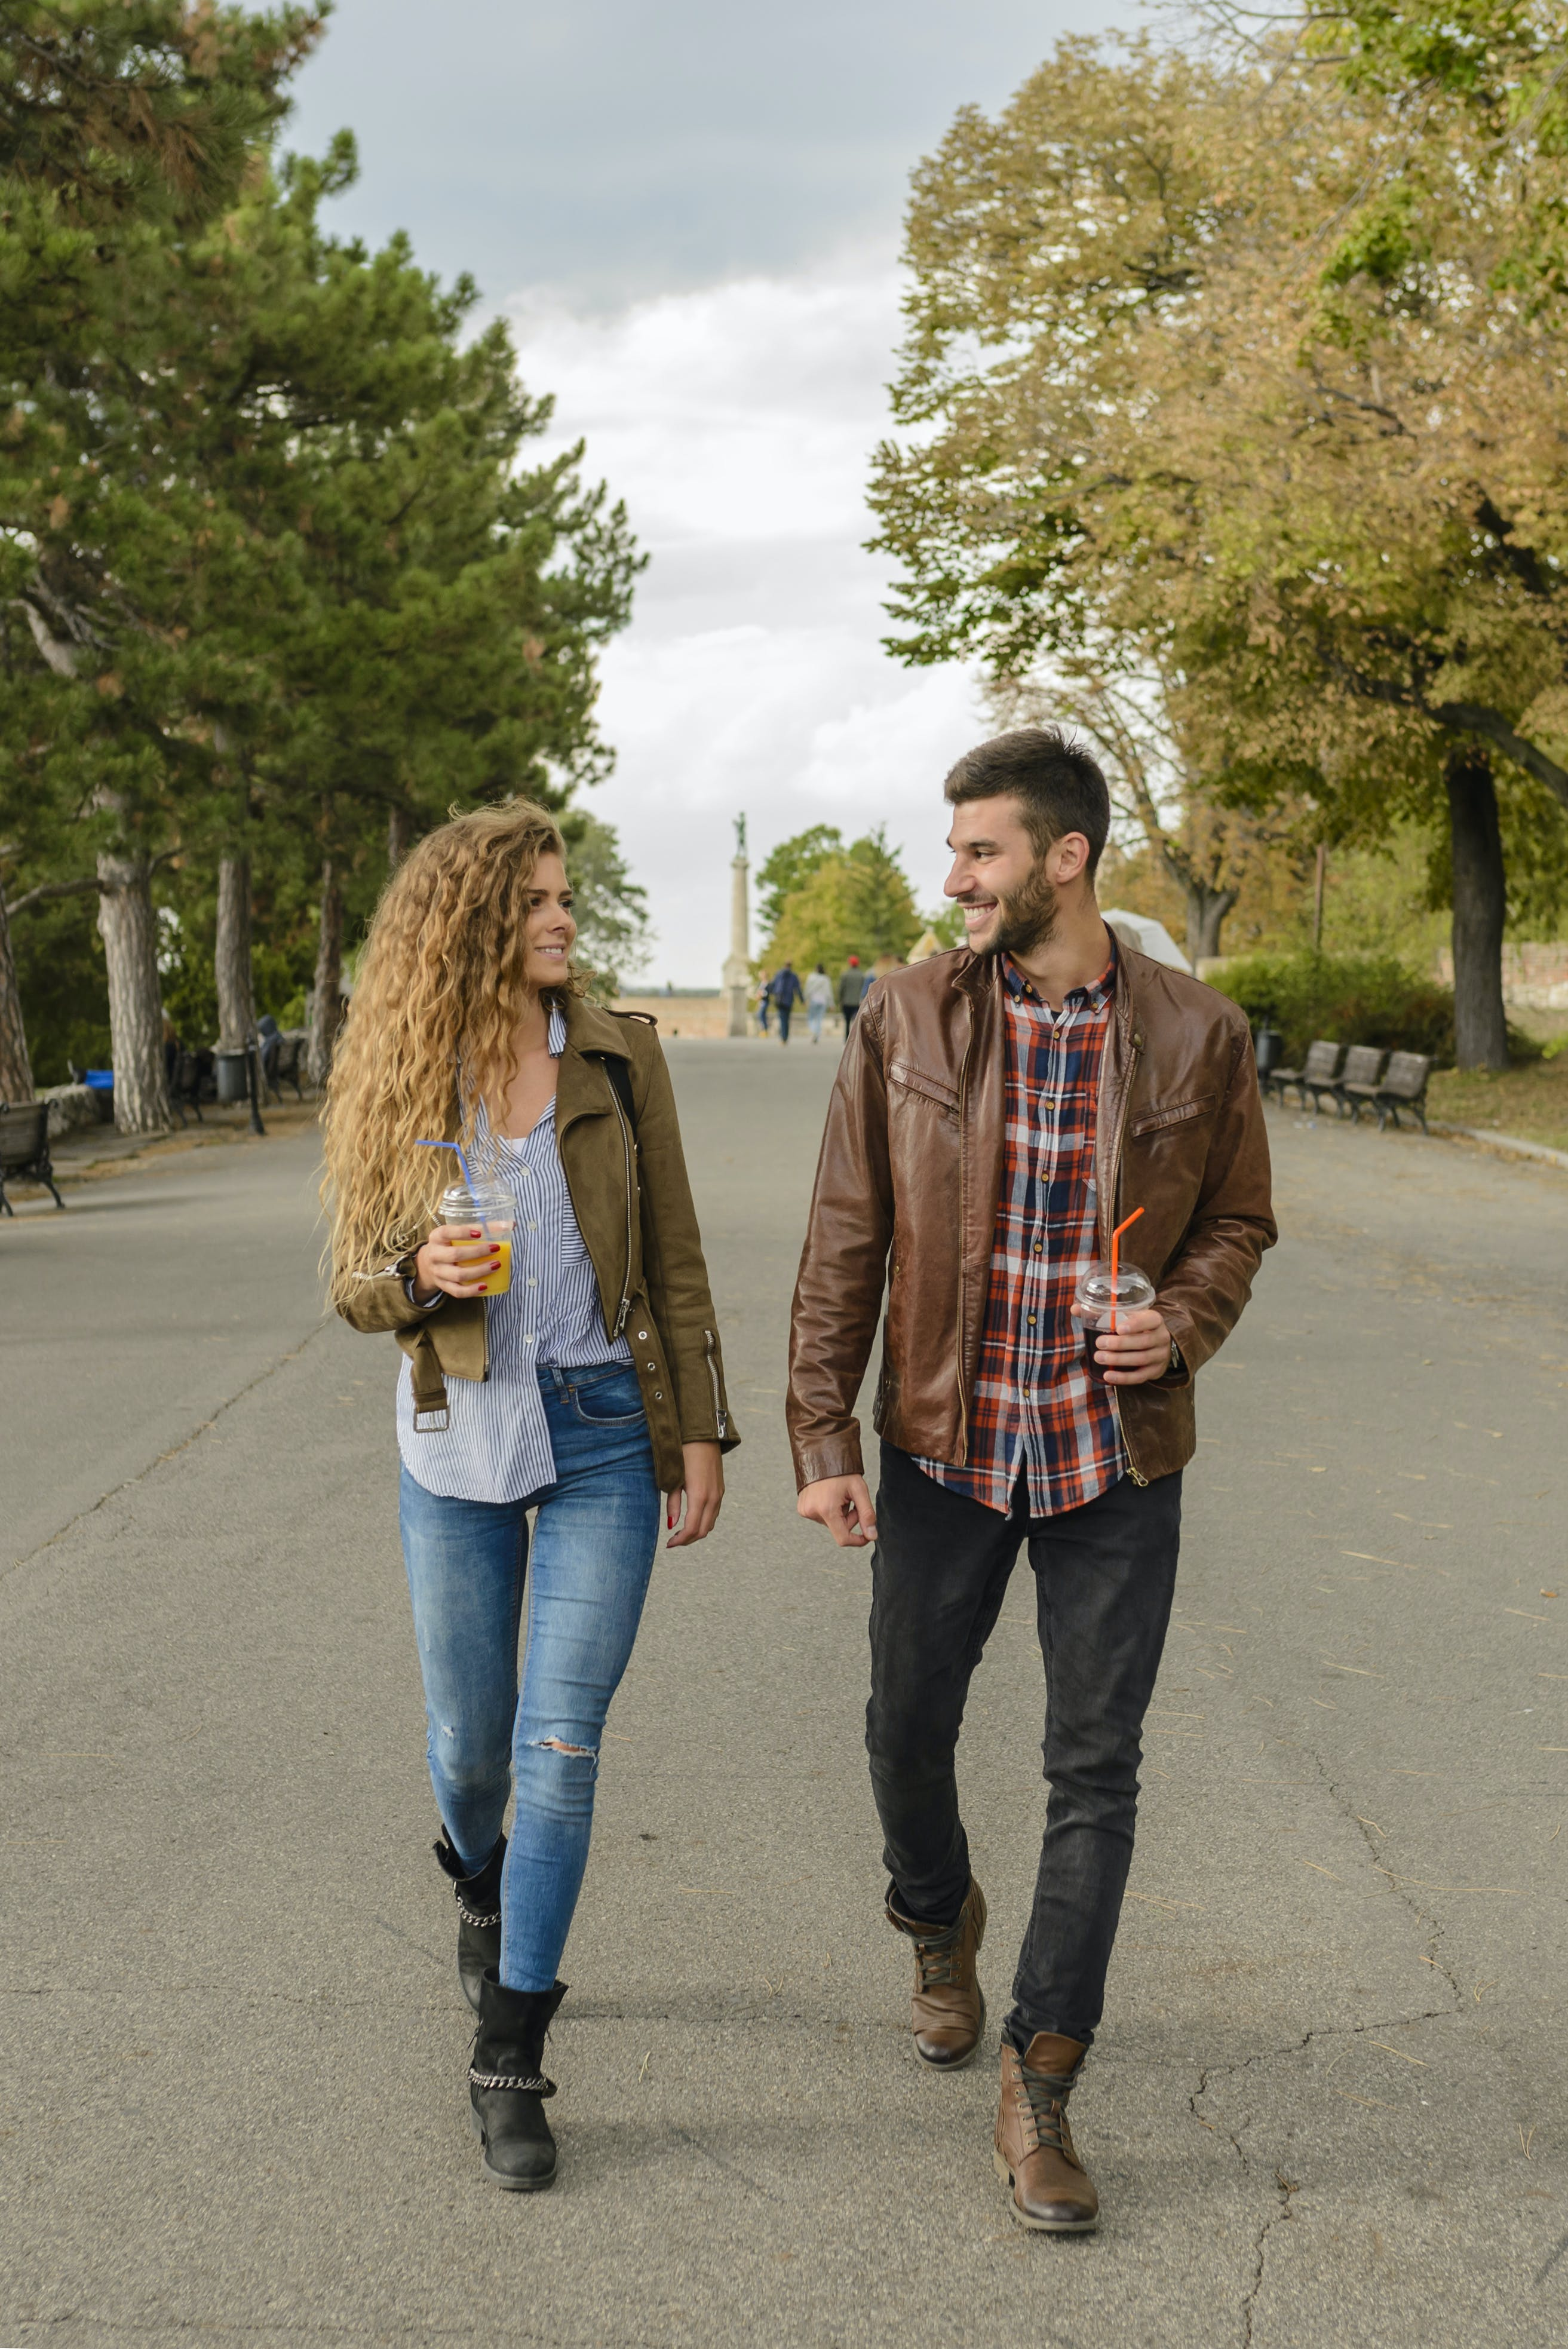 Man and Woman Wearing Brown Coats Walking on Pavement